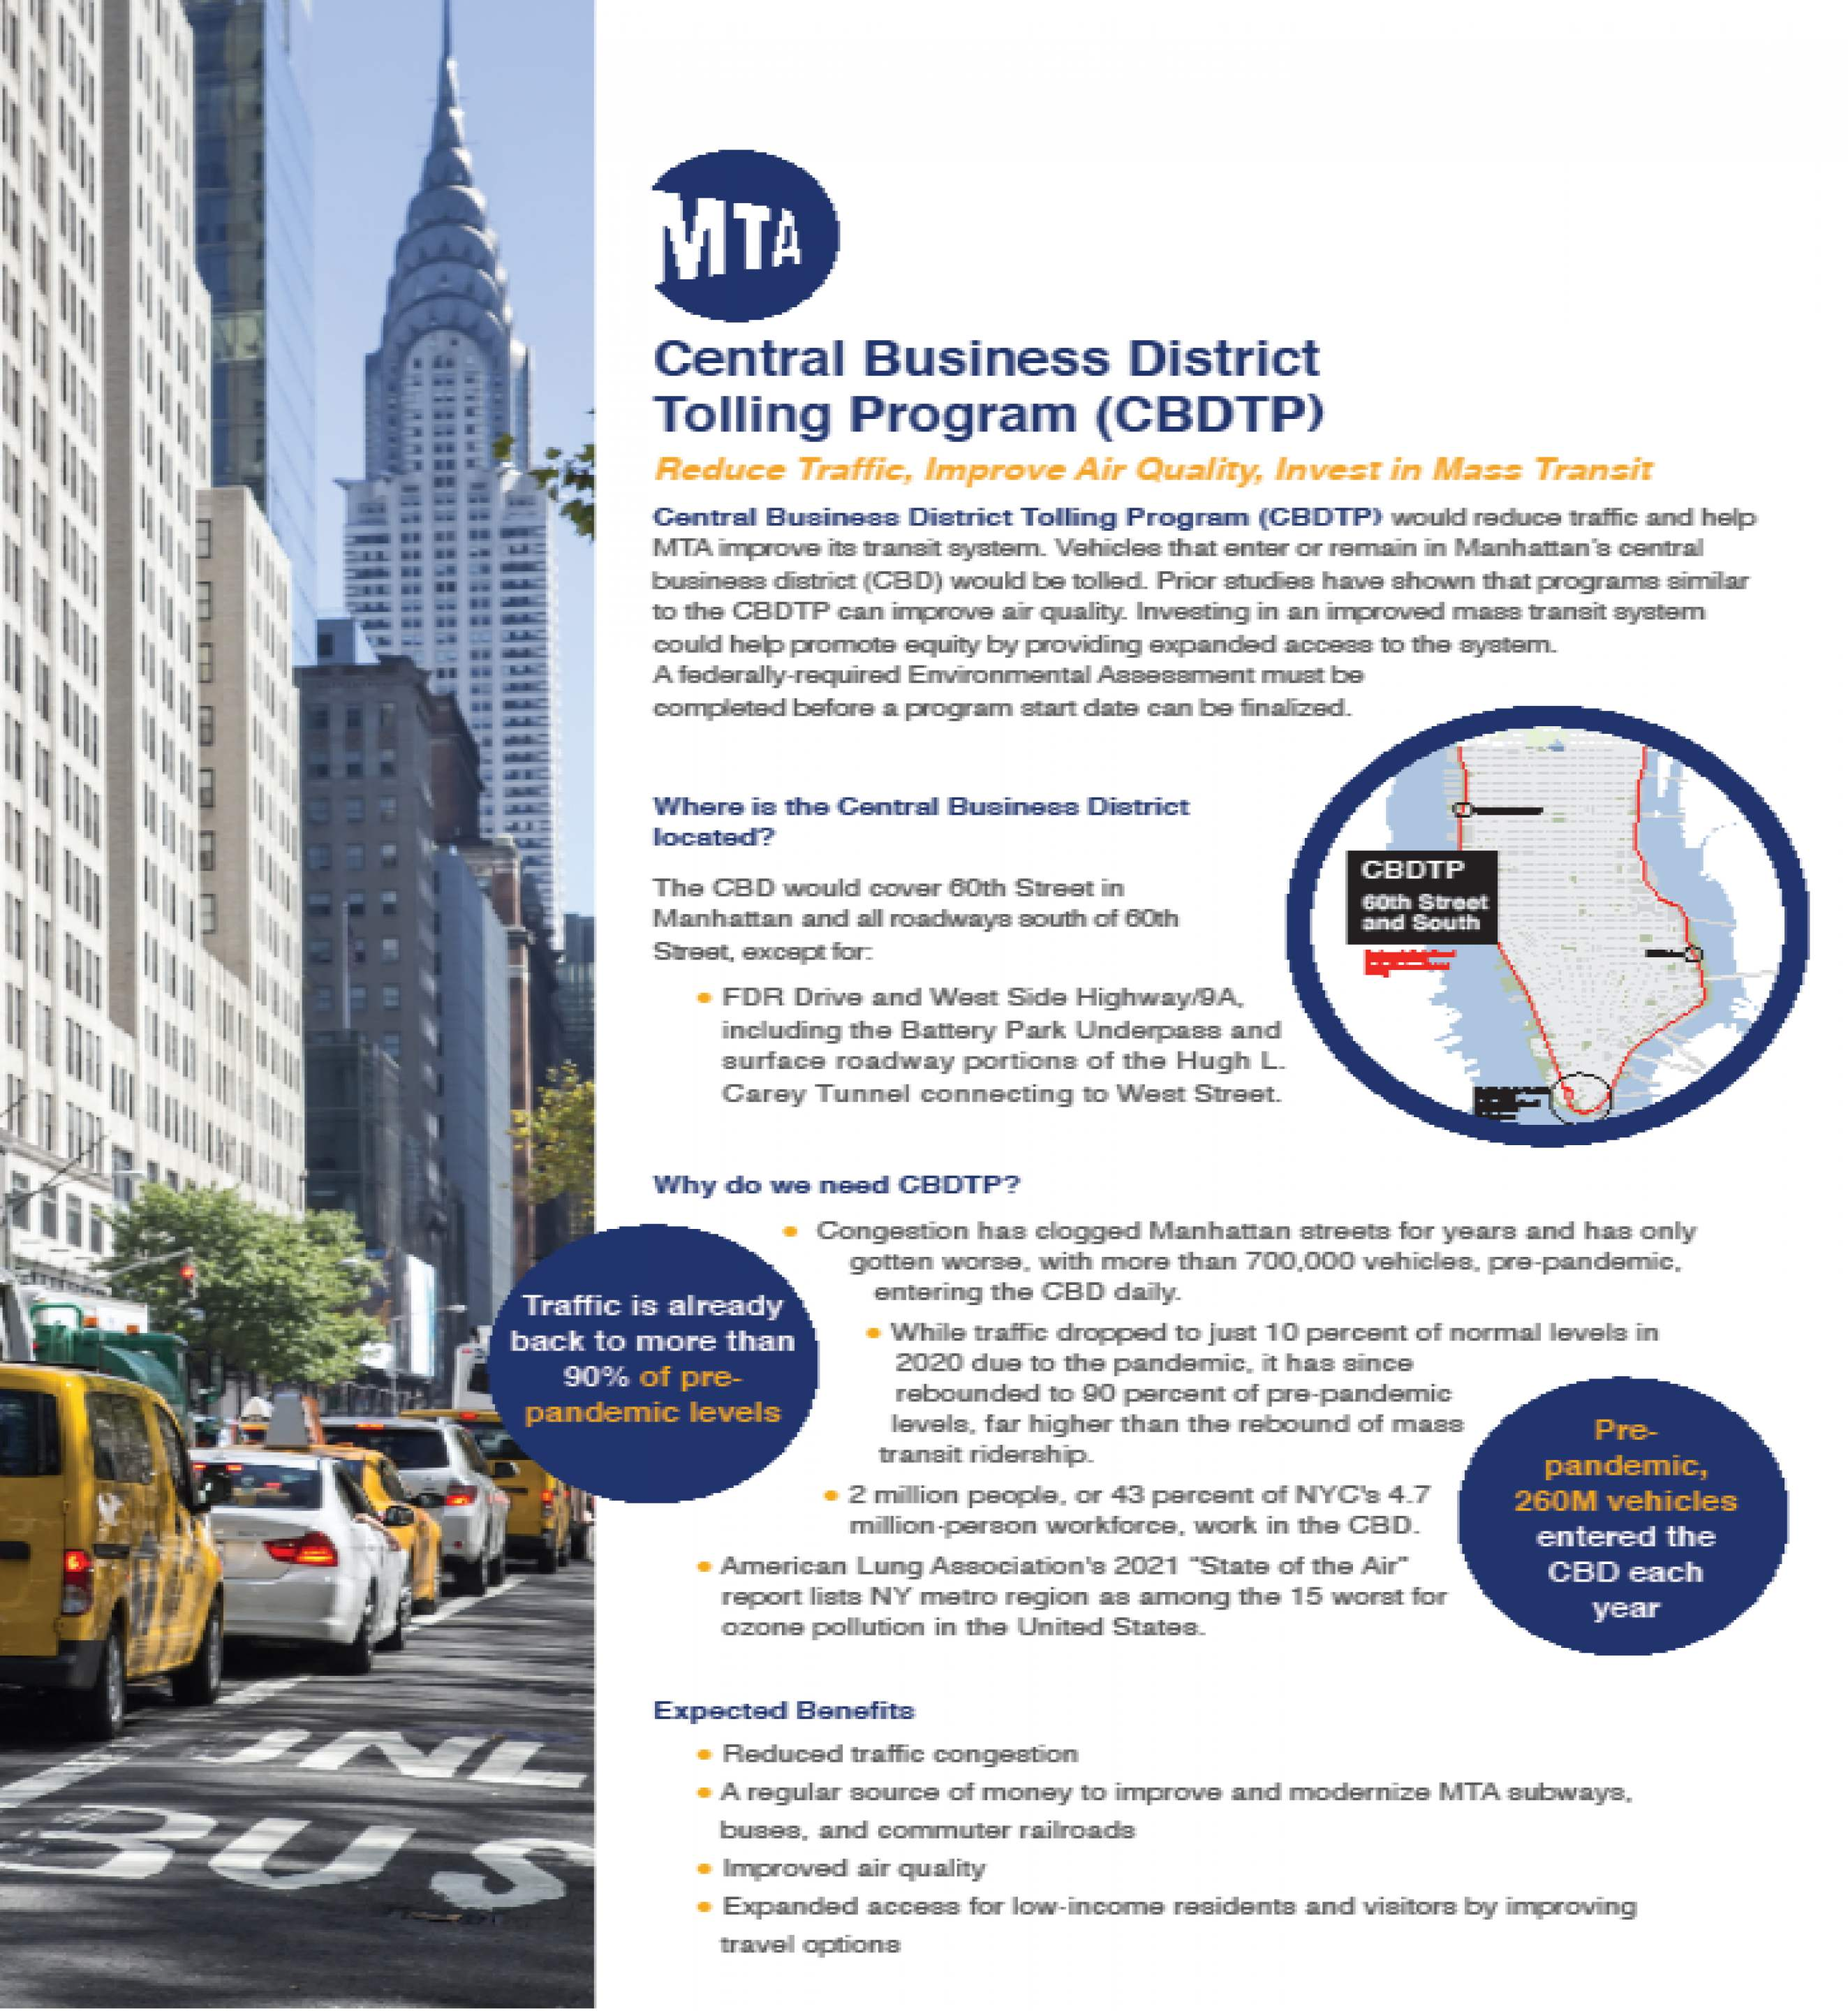 Banner Photo: MTA Central Business District Tolling Program